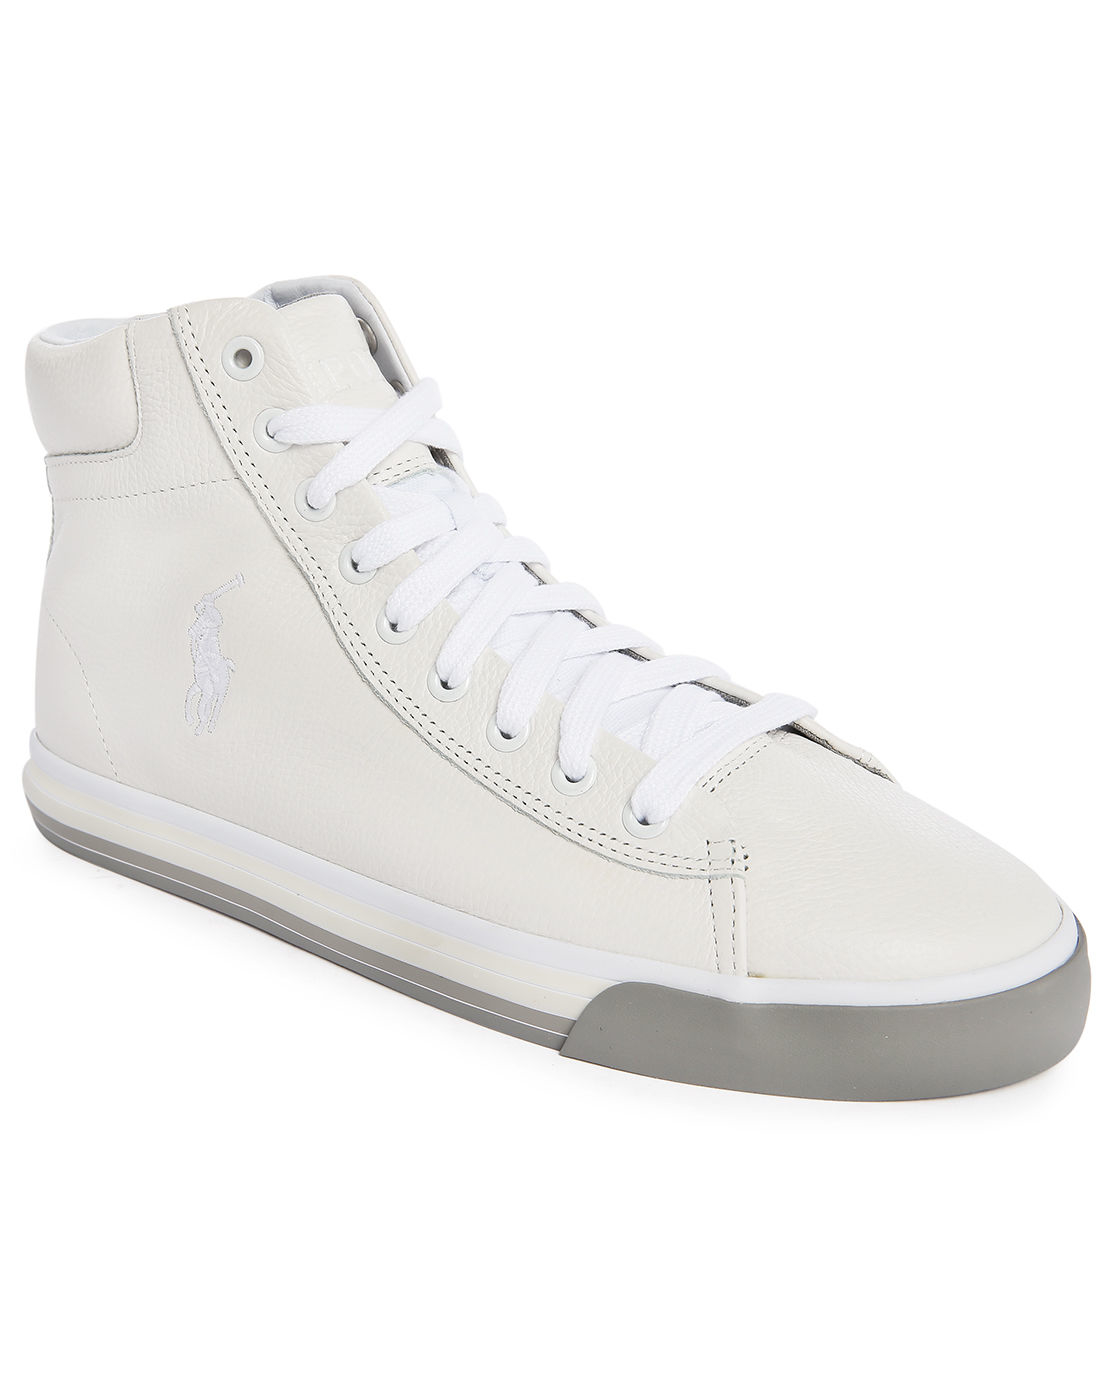 polo ralph harvey white leather mid sneakers in white for lyst